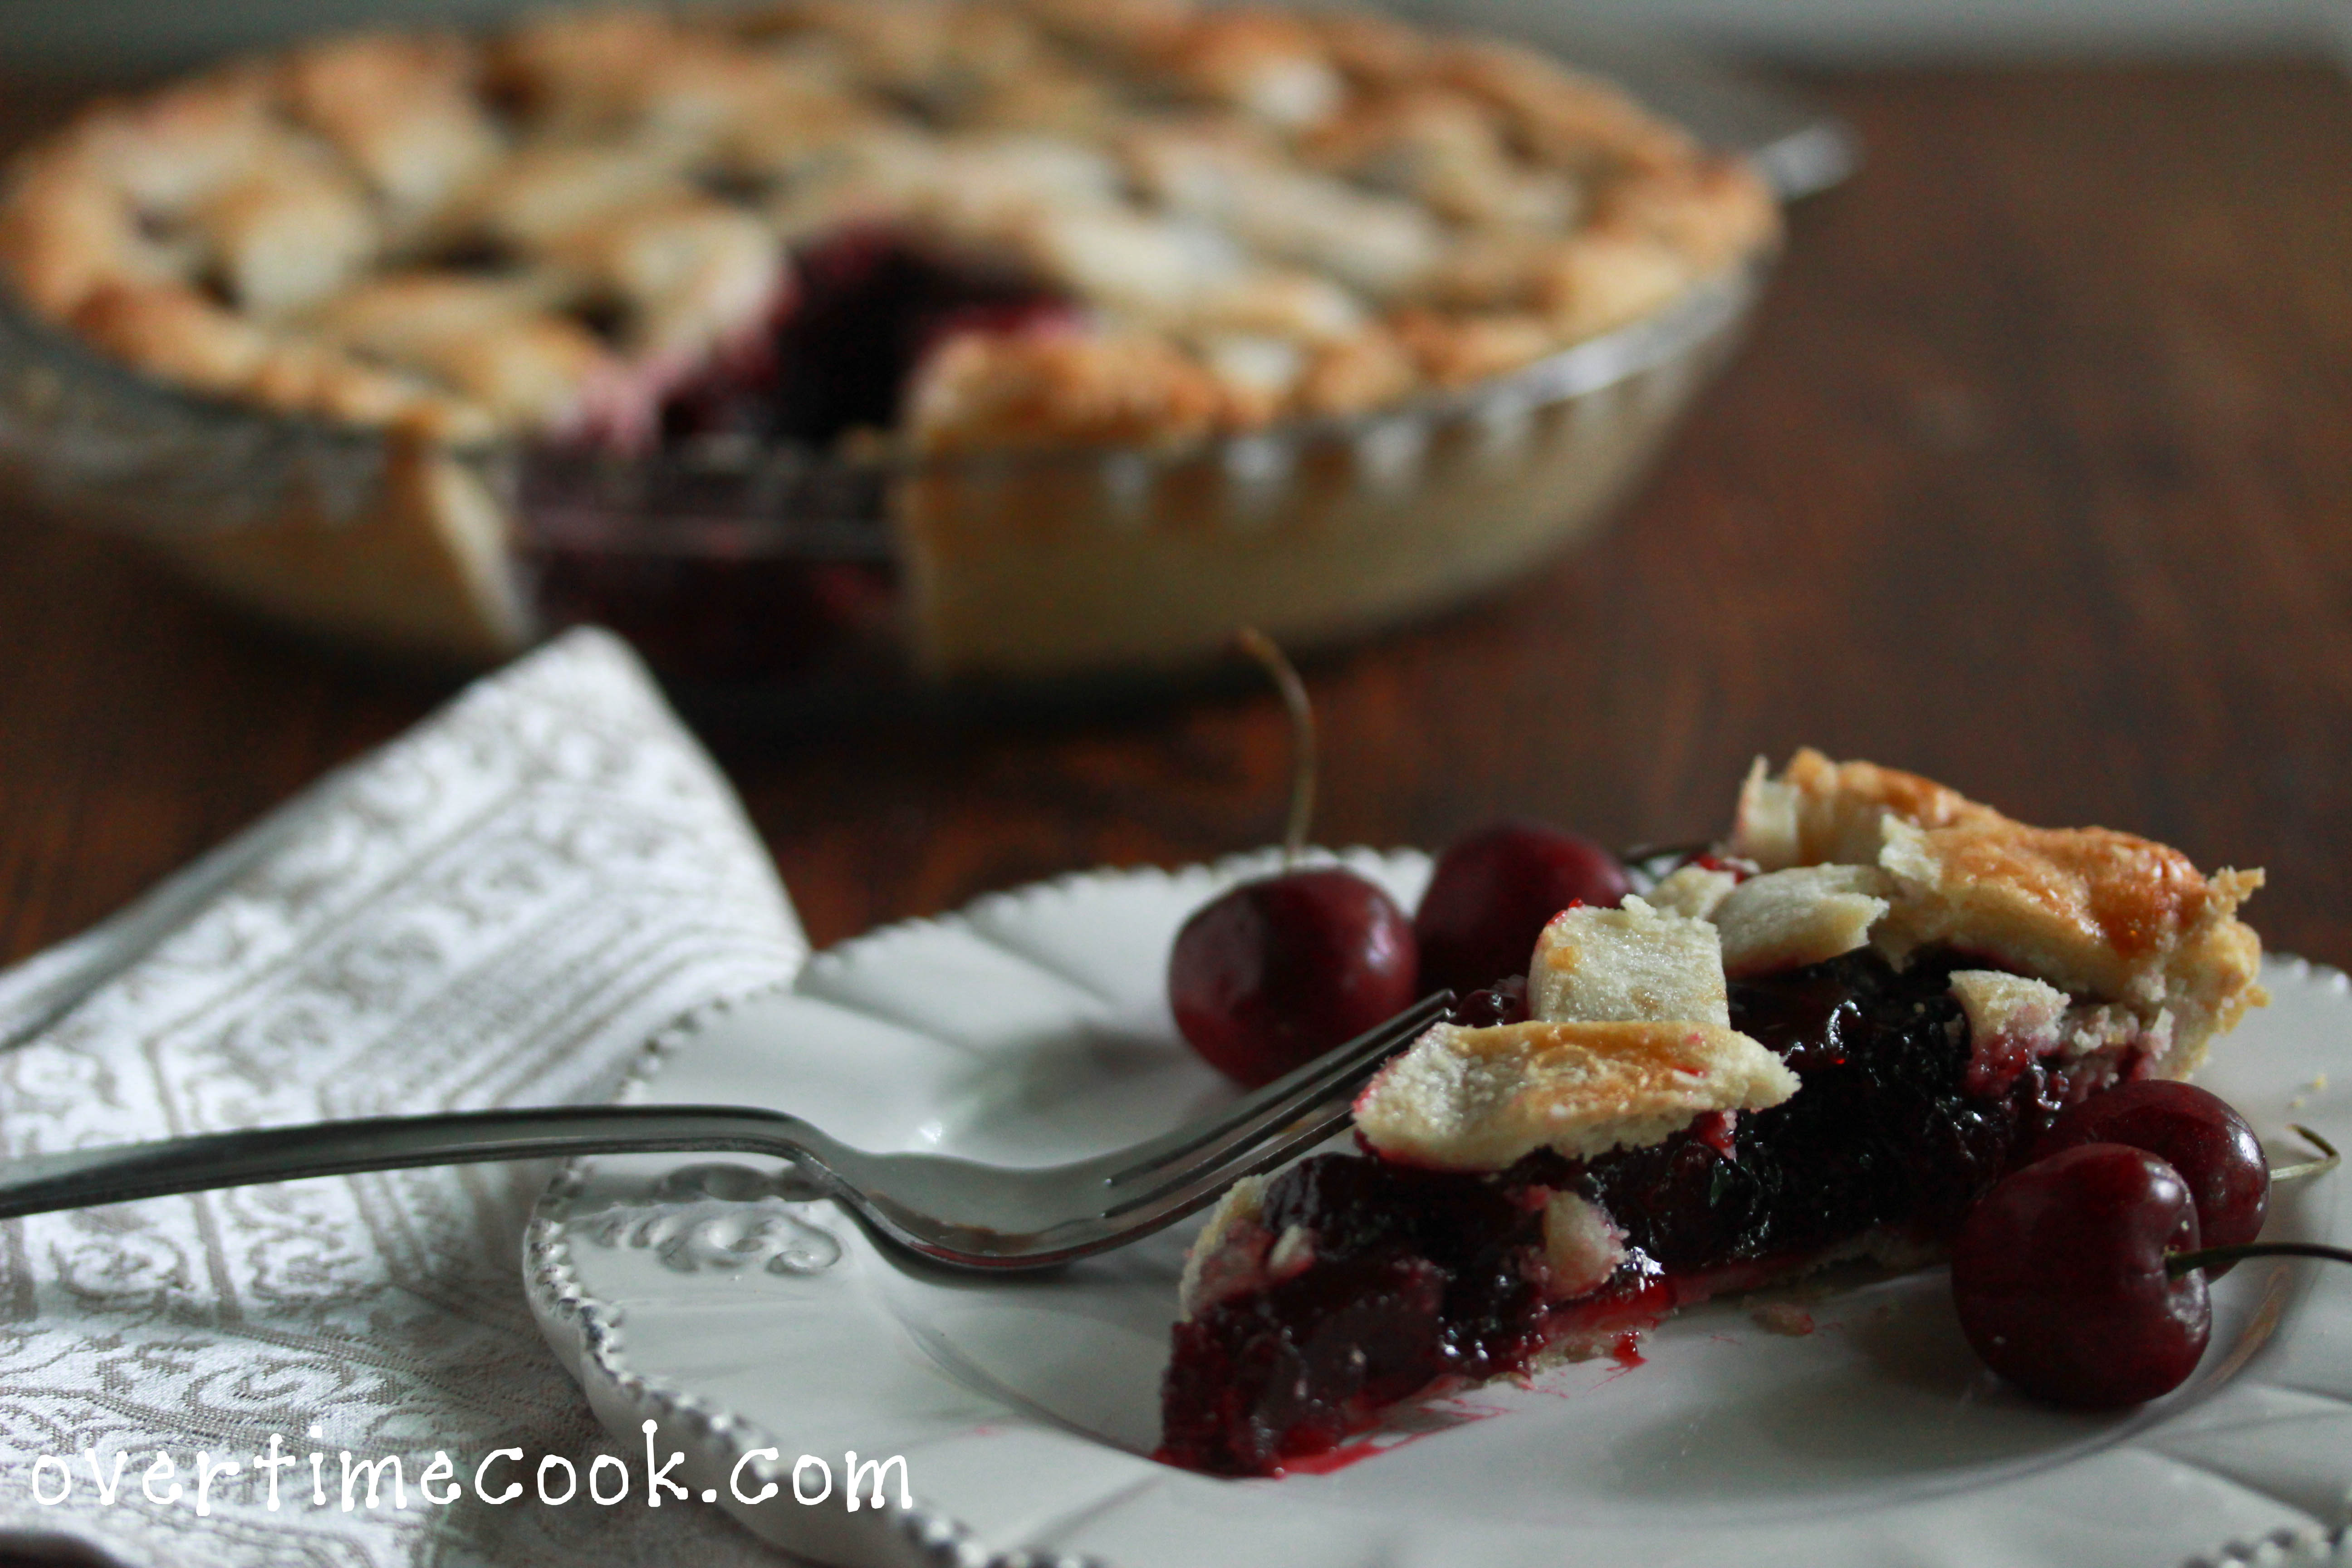 Homemade Cherry Pie and a Lattice Crust Tutorial - Overtime Cook